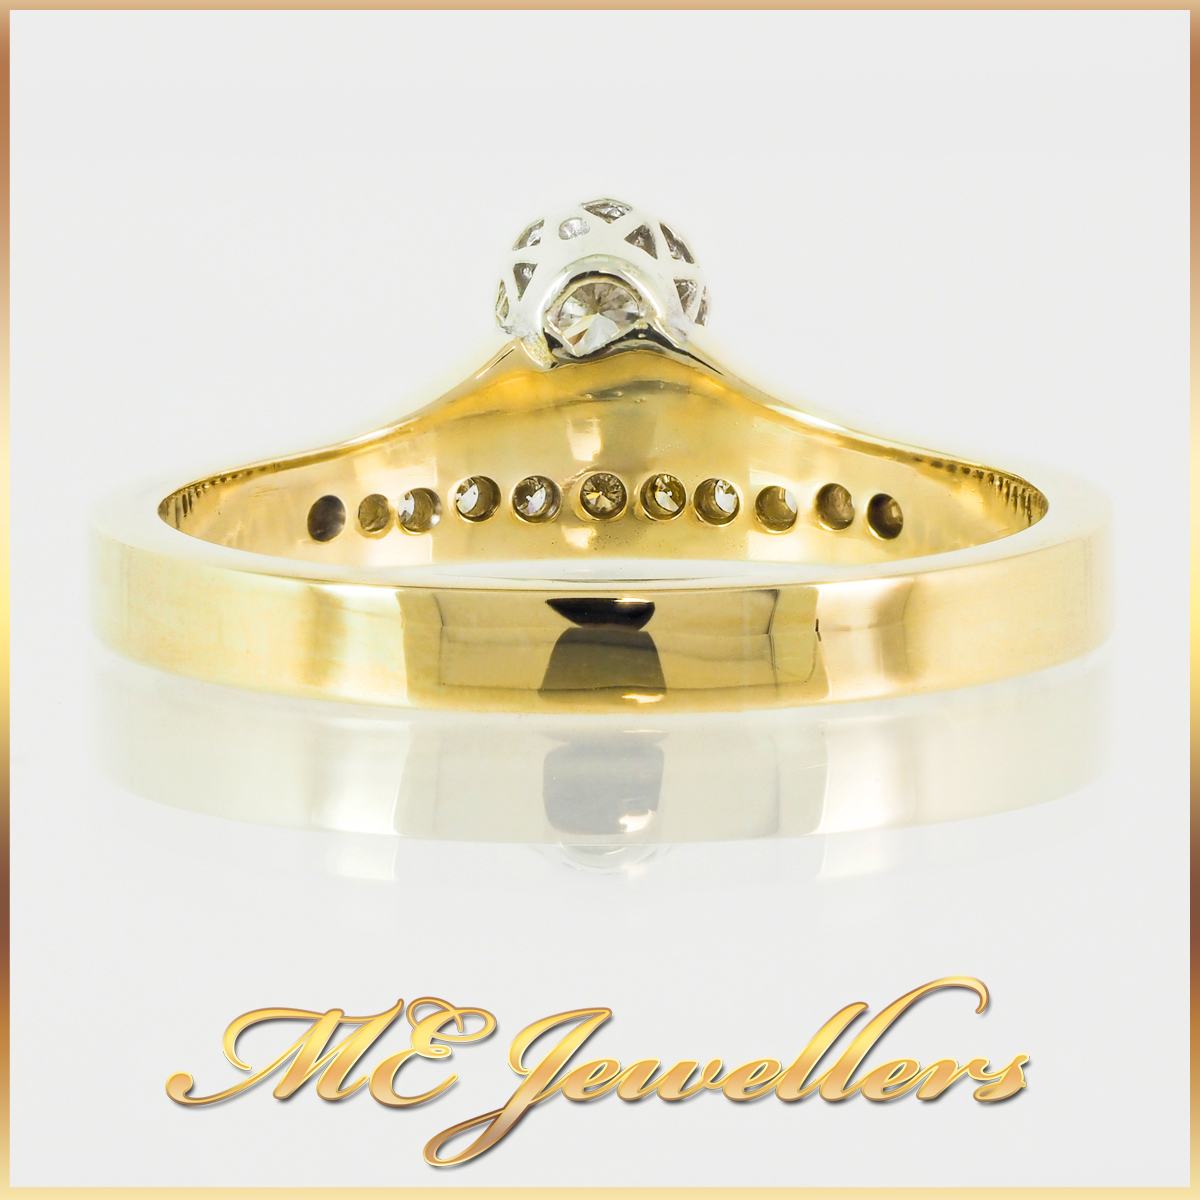 9CT High Rise Yellow Gold Dress Ring